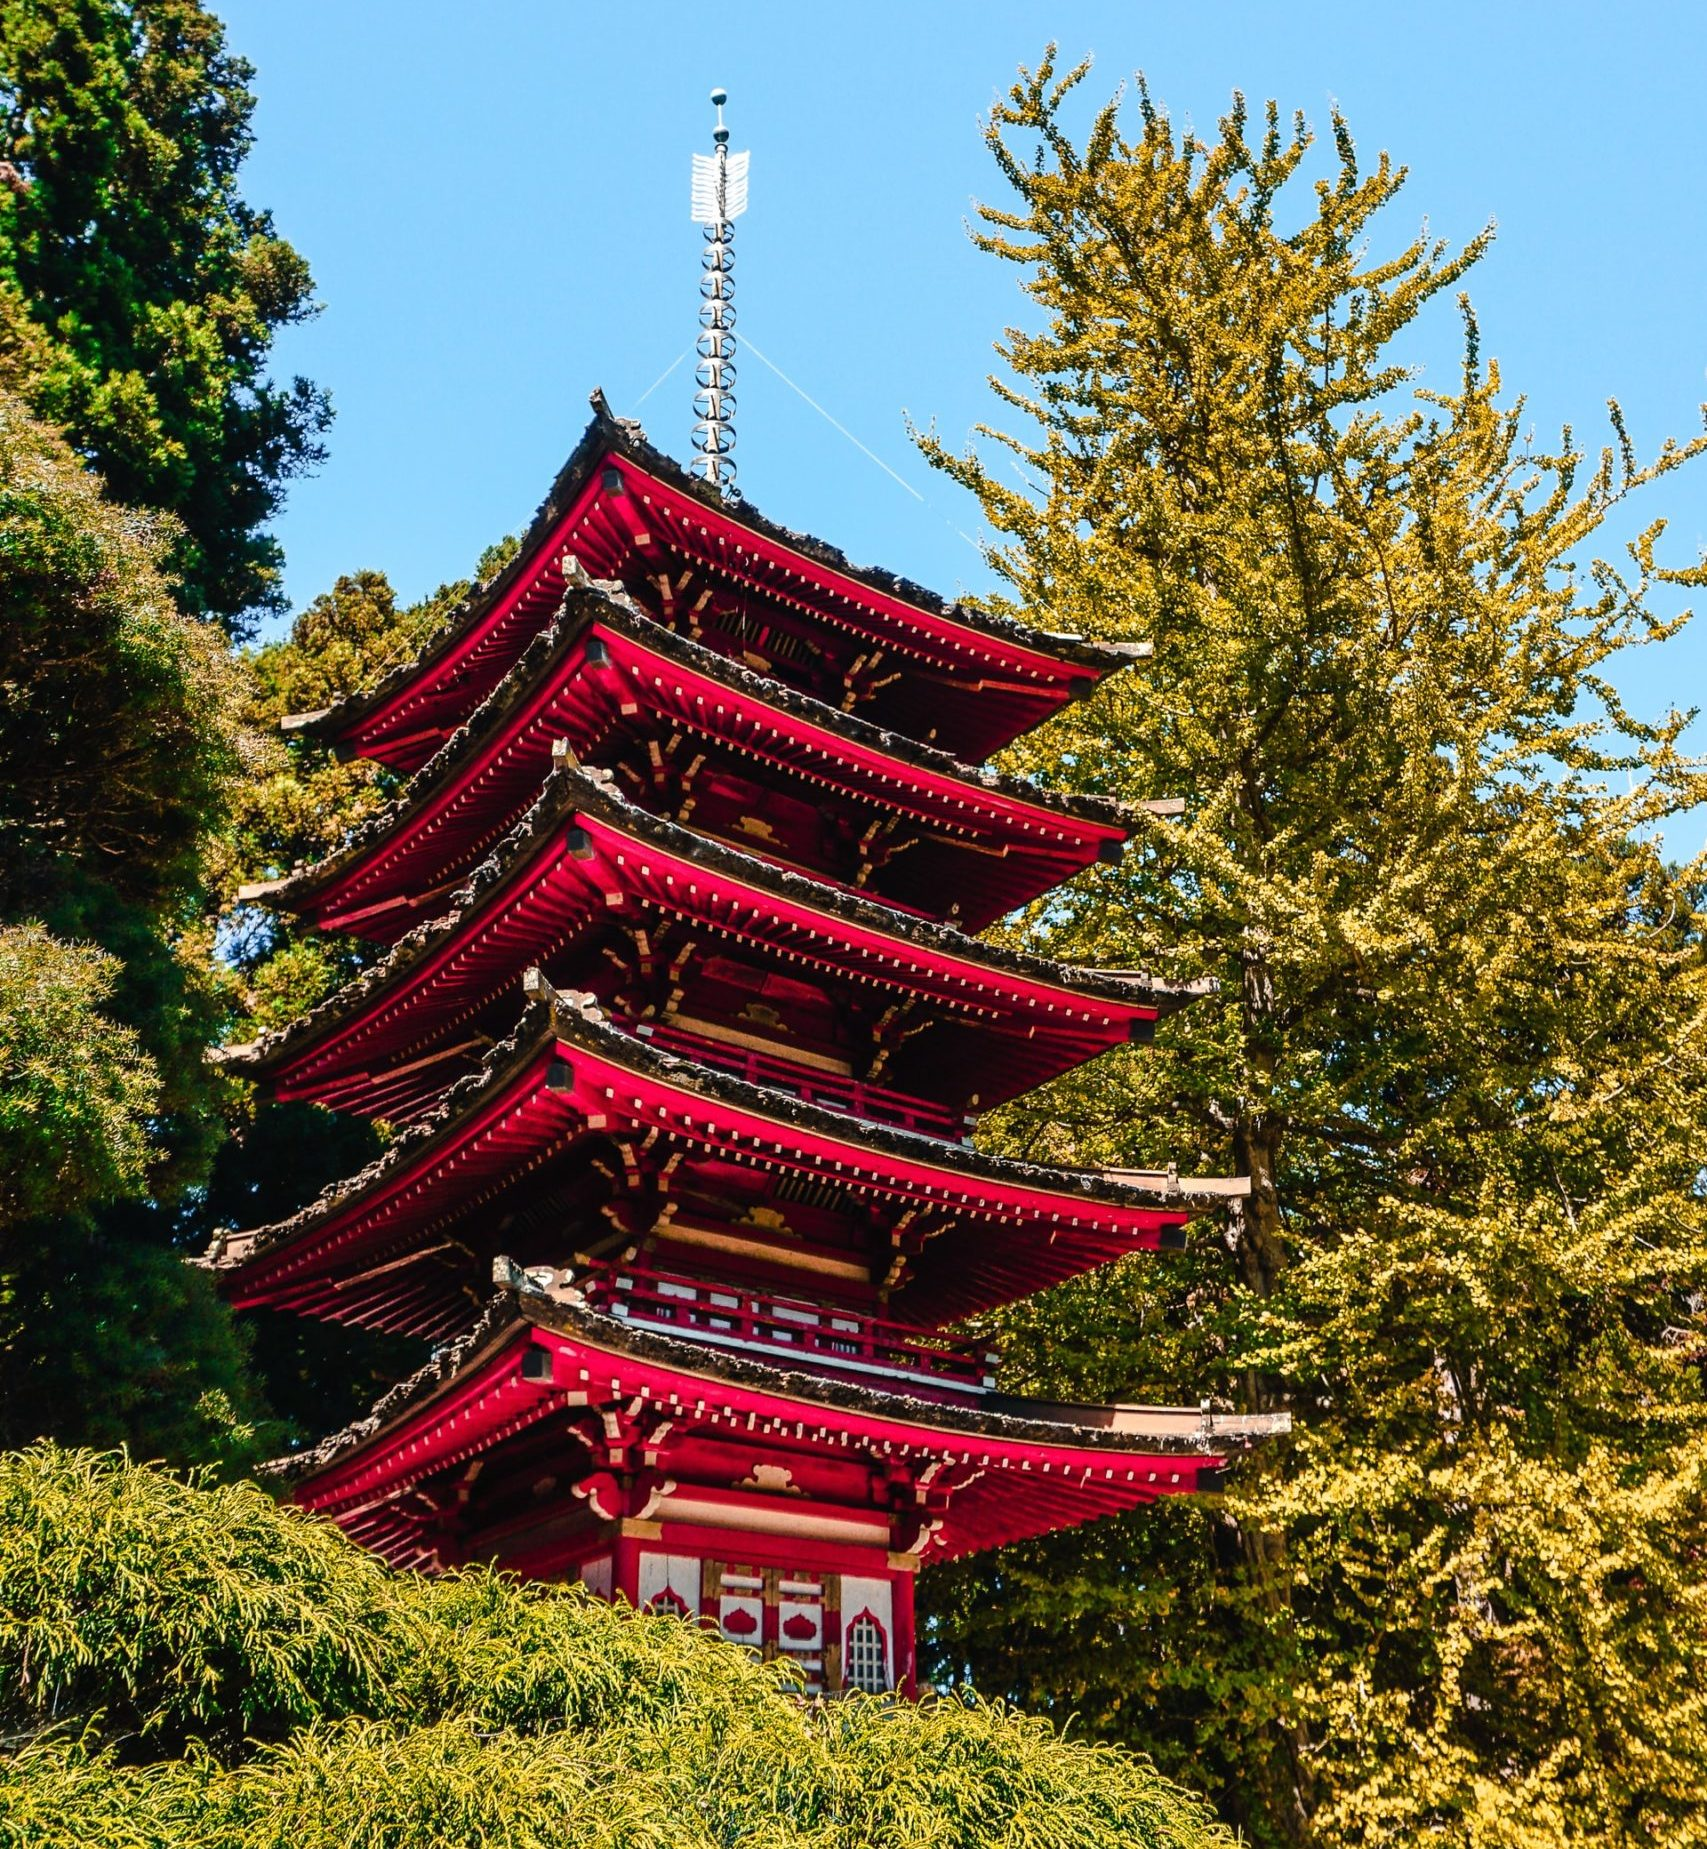 red pagoda at the Japanese Garden, one of several things to do and see in Golden Gate Park